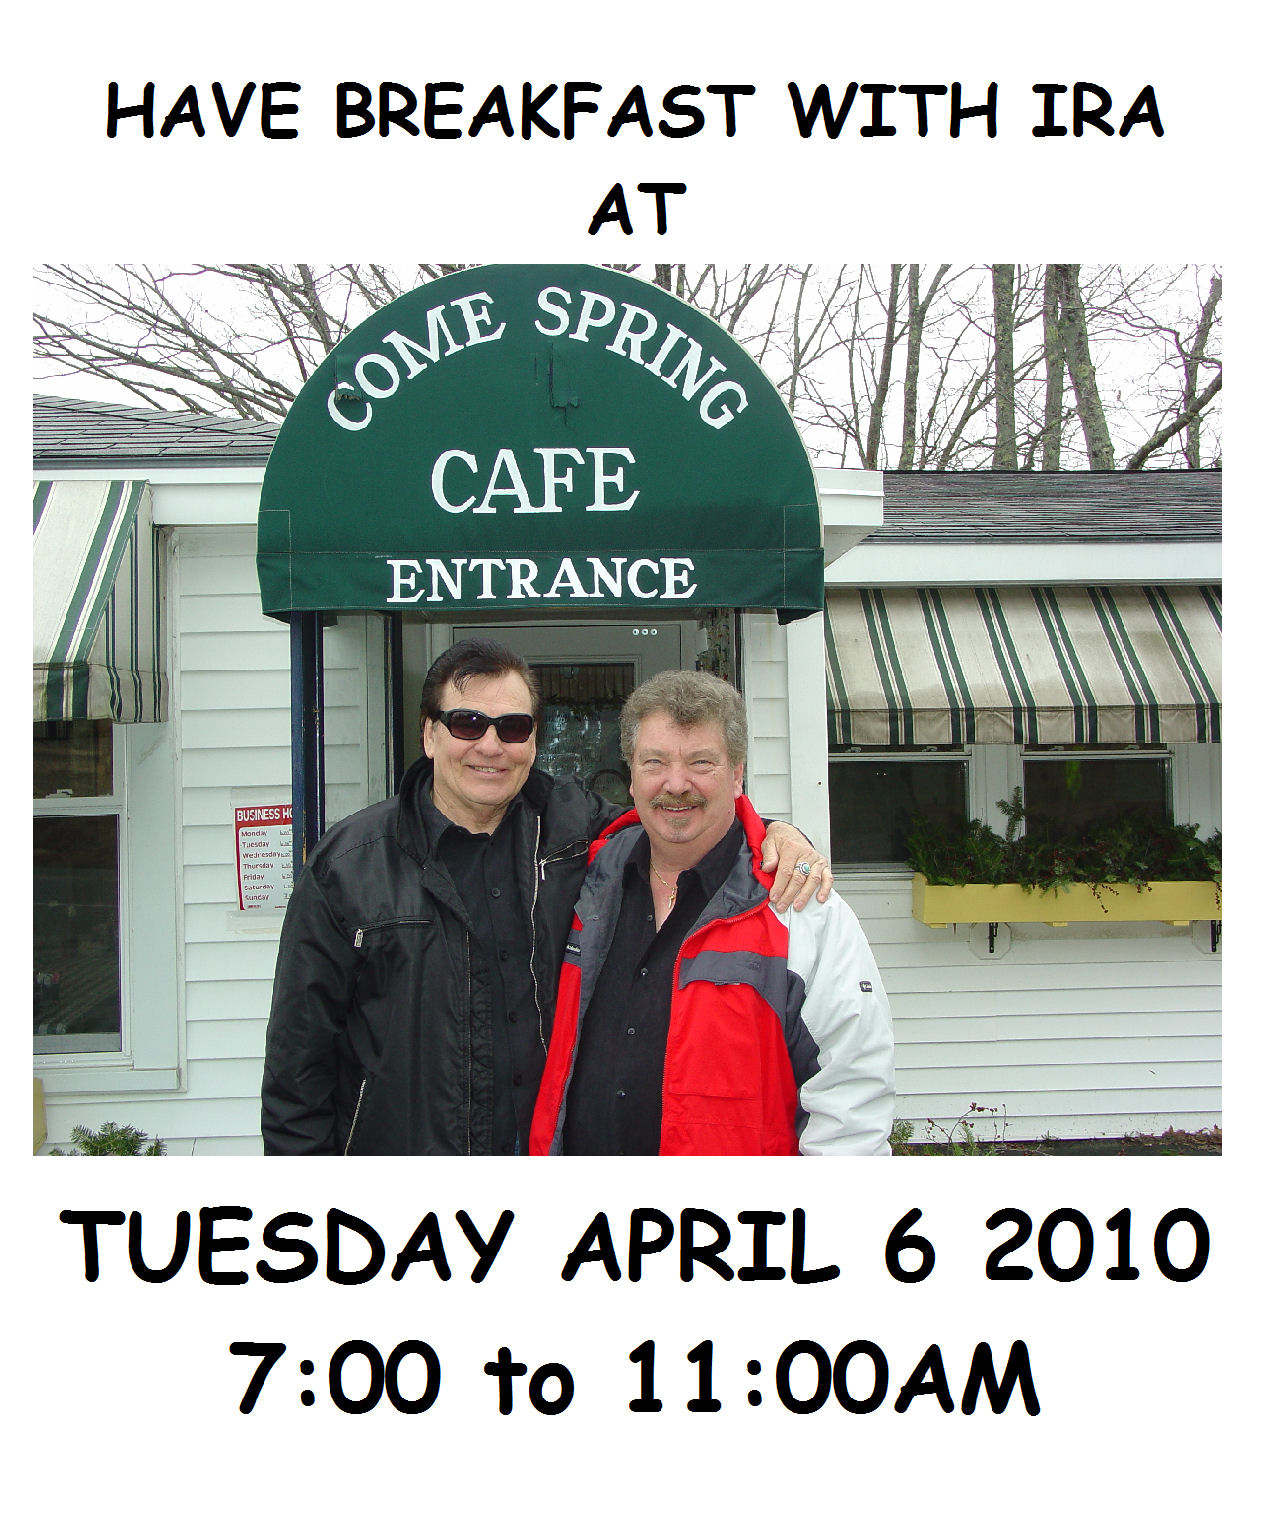 Ira & Dan Newman to perform 2010 Breakfast Show in Maine